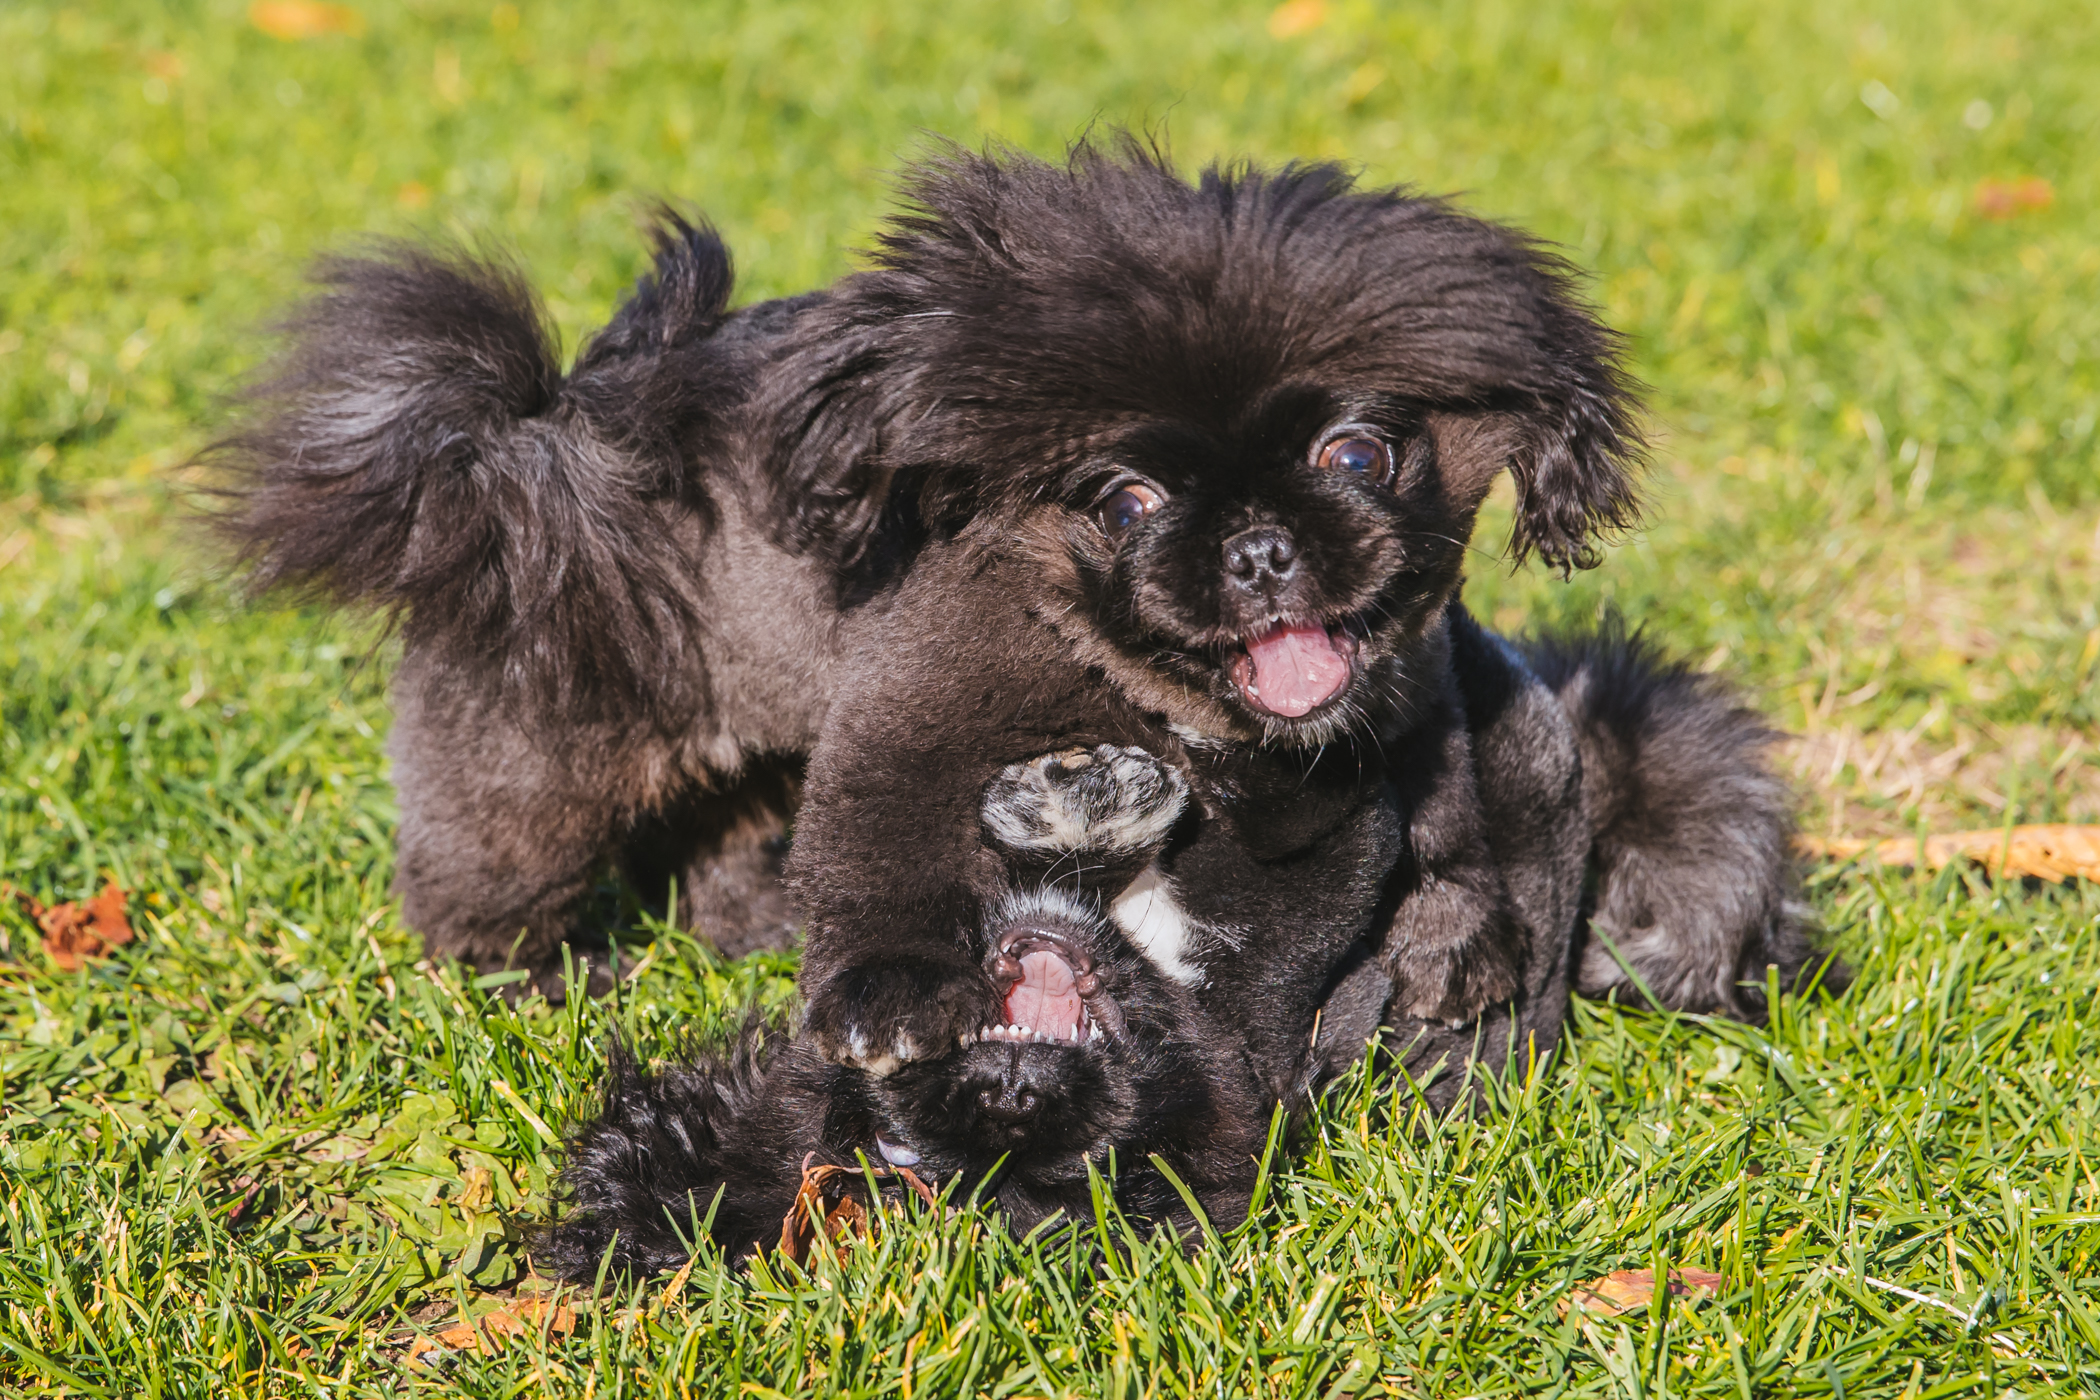 "Vivi and Theo and six-month-old Pekingese puppies, silly and playful one minute, then chill and lazy the next! The duo (Geminis, in case you were wondering) have never met a bed they didn't like. in fact, both have five beds each and will rotate through them every day. Their breed tends to be very stubborn and these two are no exception to that - they prefer to be carried everywhere and will only walk if given many treat incentives. You can follow their adventures on Instagram at{&nbsp;}<a  href=""https://www.instagram.com/vivi.and.theo/"" target=""_blank"" title=""https://www.instagram.com/vivi.and.theo/"">@vivi.and.theo</a>.<a  href=""http://seattlerefined.com/ruffined"" target=""_blank"" title=""http://seattlerefined.com/ruffined"">{&nbsp;}The RUFFined Spotlight</a>{&nbsp;}is a weekly profile of local pets living and loving life in the PNW. If you or someone you know has a pet you'd like featured, email us at{&nbsp;}<a  href=""mailto:hello@seattlerefined.com"" target=""_blank"" title=""mailto:hello@seattlerefined.com"">hello@seattlerefined.com</a>, and your furbaby could be the next spotlighted! (Image: Sunita Martini / Seattle Refined)"